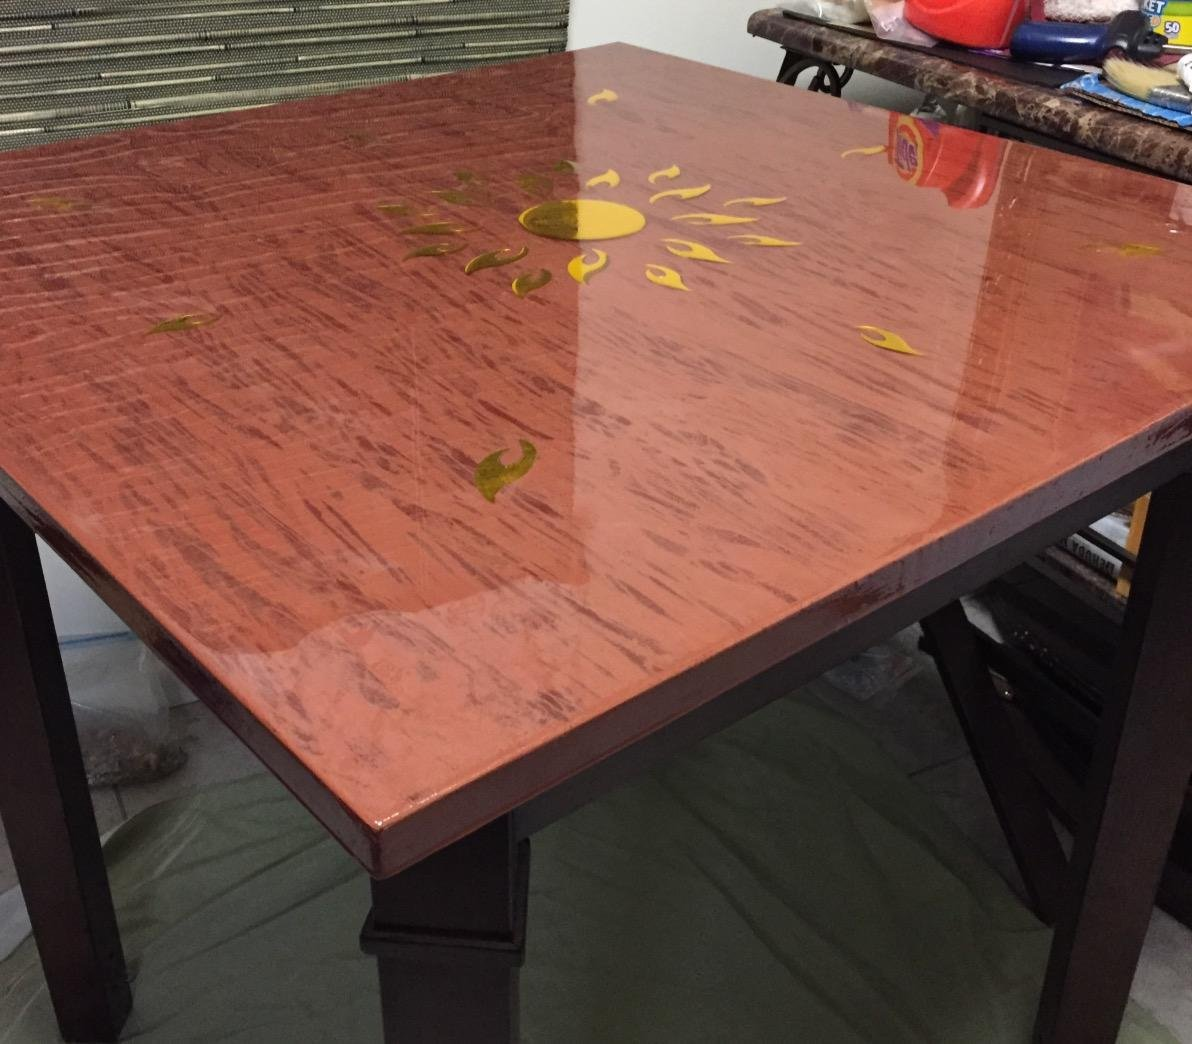 Lovely Crystal Clear Bar Table Top Epoxy Resin Coating For Wood Tabletop   1  Gallon Kit: Amazon.com: Industrial U0026 Scientific